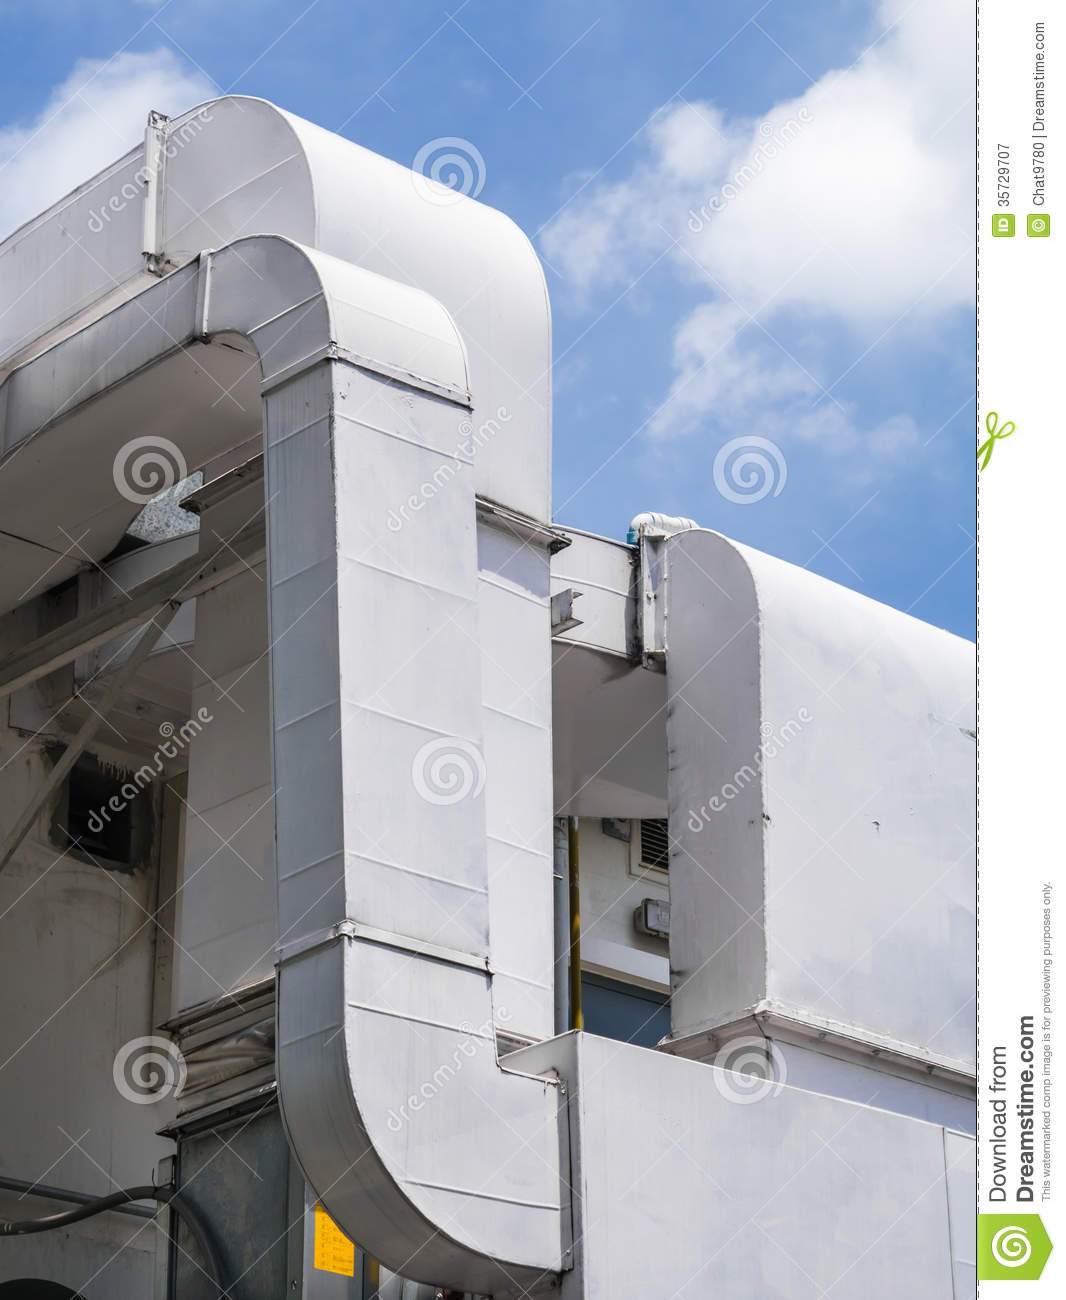 Air Ventilation Duct Royalty Free Stock Photography Image: 35729707 #82A328